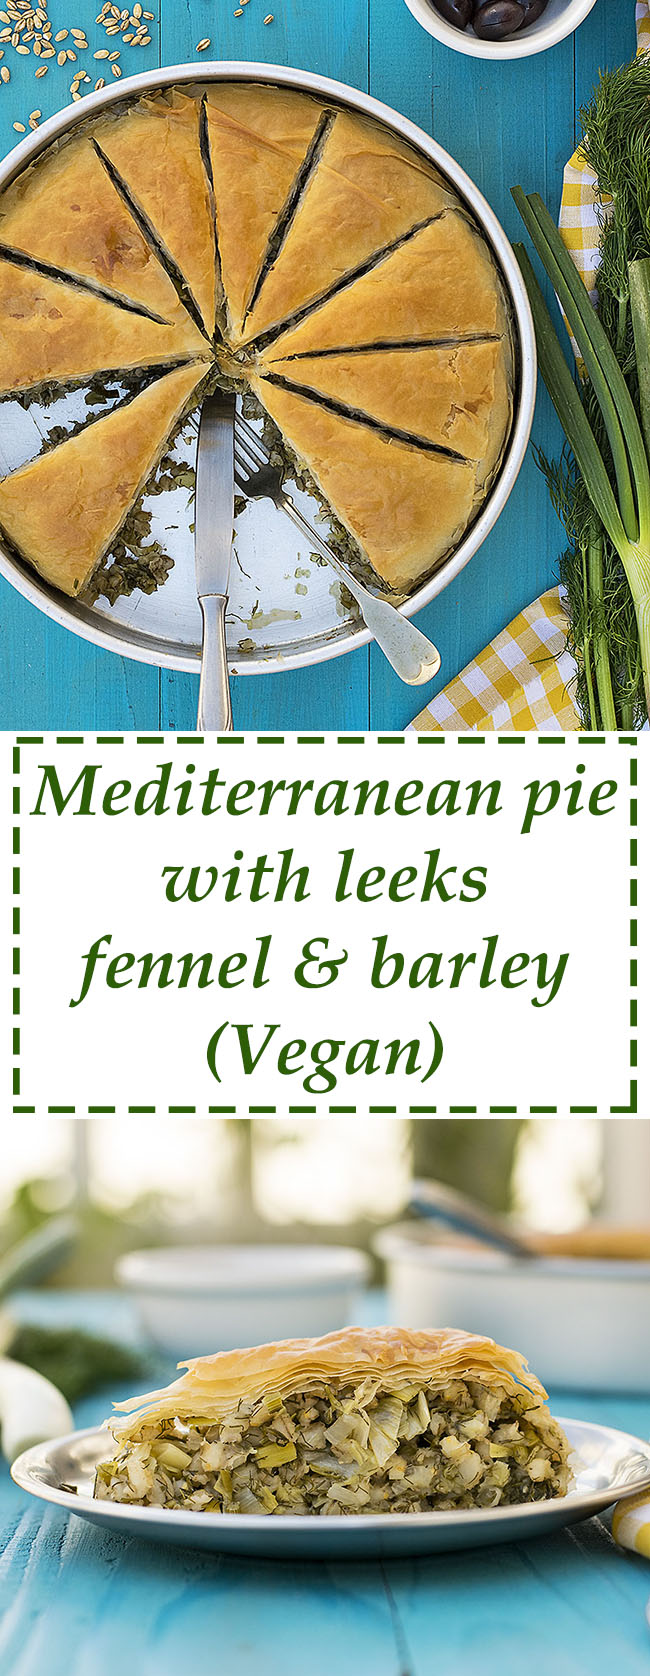 Mediterranean leek, fennel and barley pie (Vegan) 6